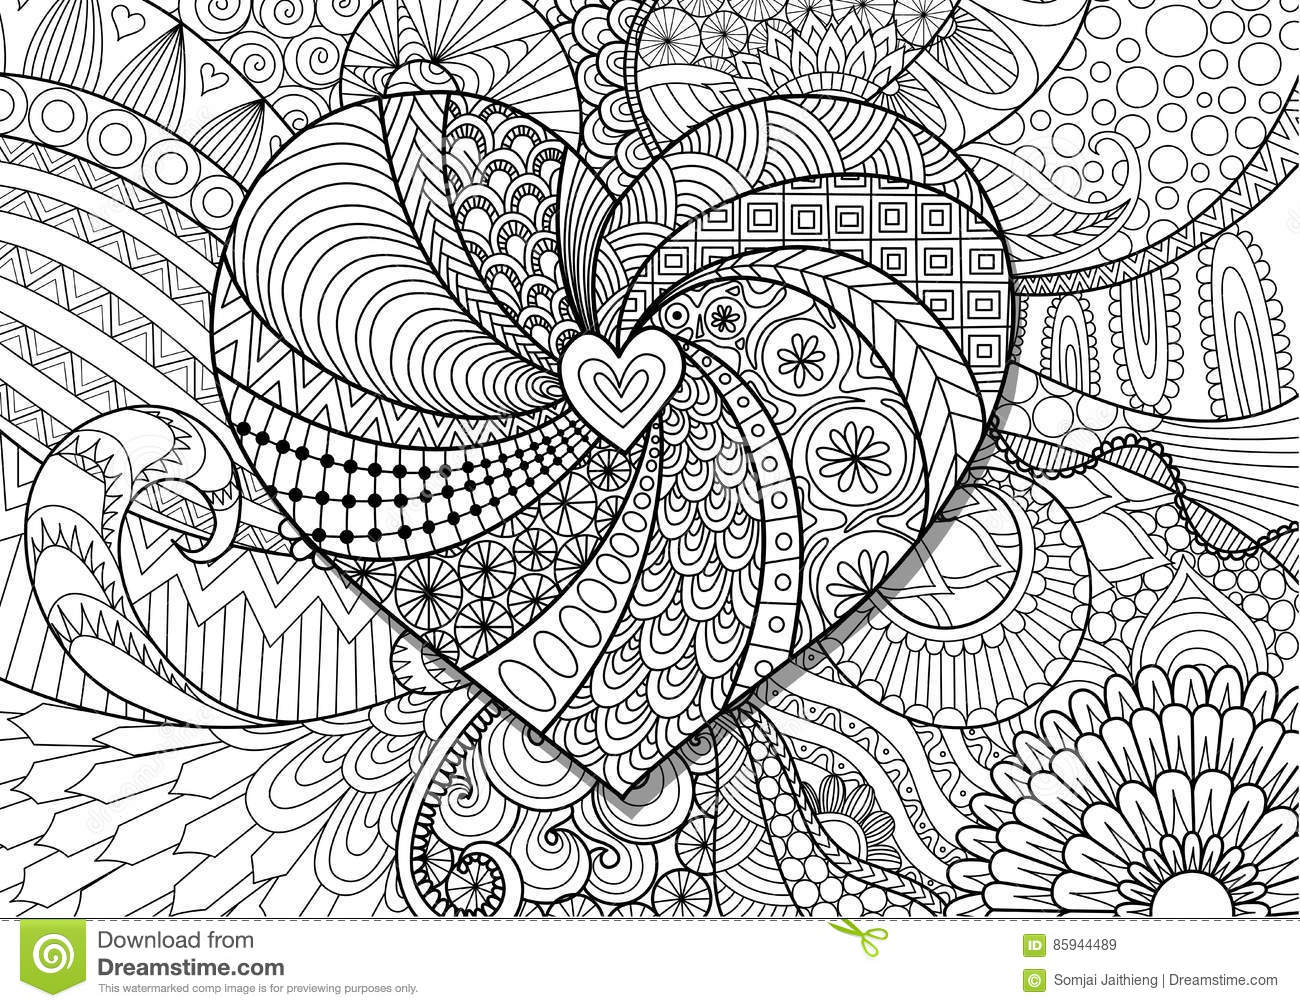 Royalty Free Vector Download Heart On Flowers Zendoodle Design For Adult Coloring Book Page